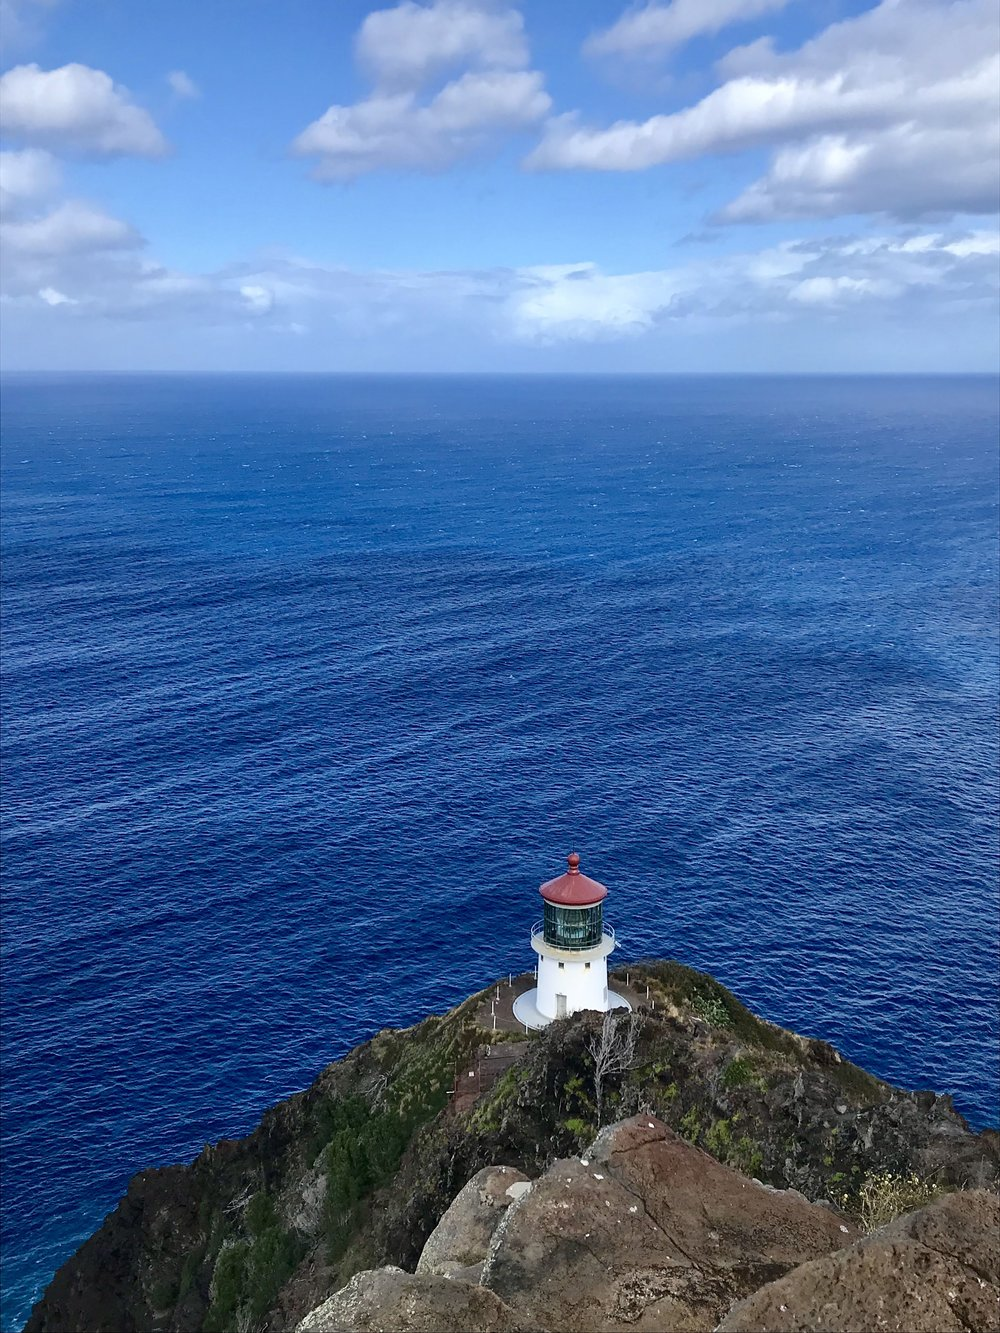 Makapu'u Lighthouse - Paved asphalt trail all the way to the top! Popular hike to spot some whales!